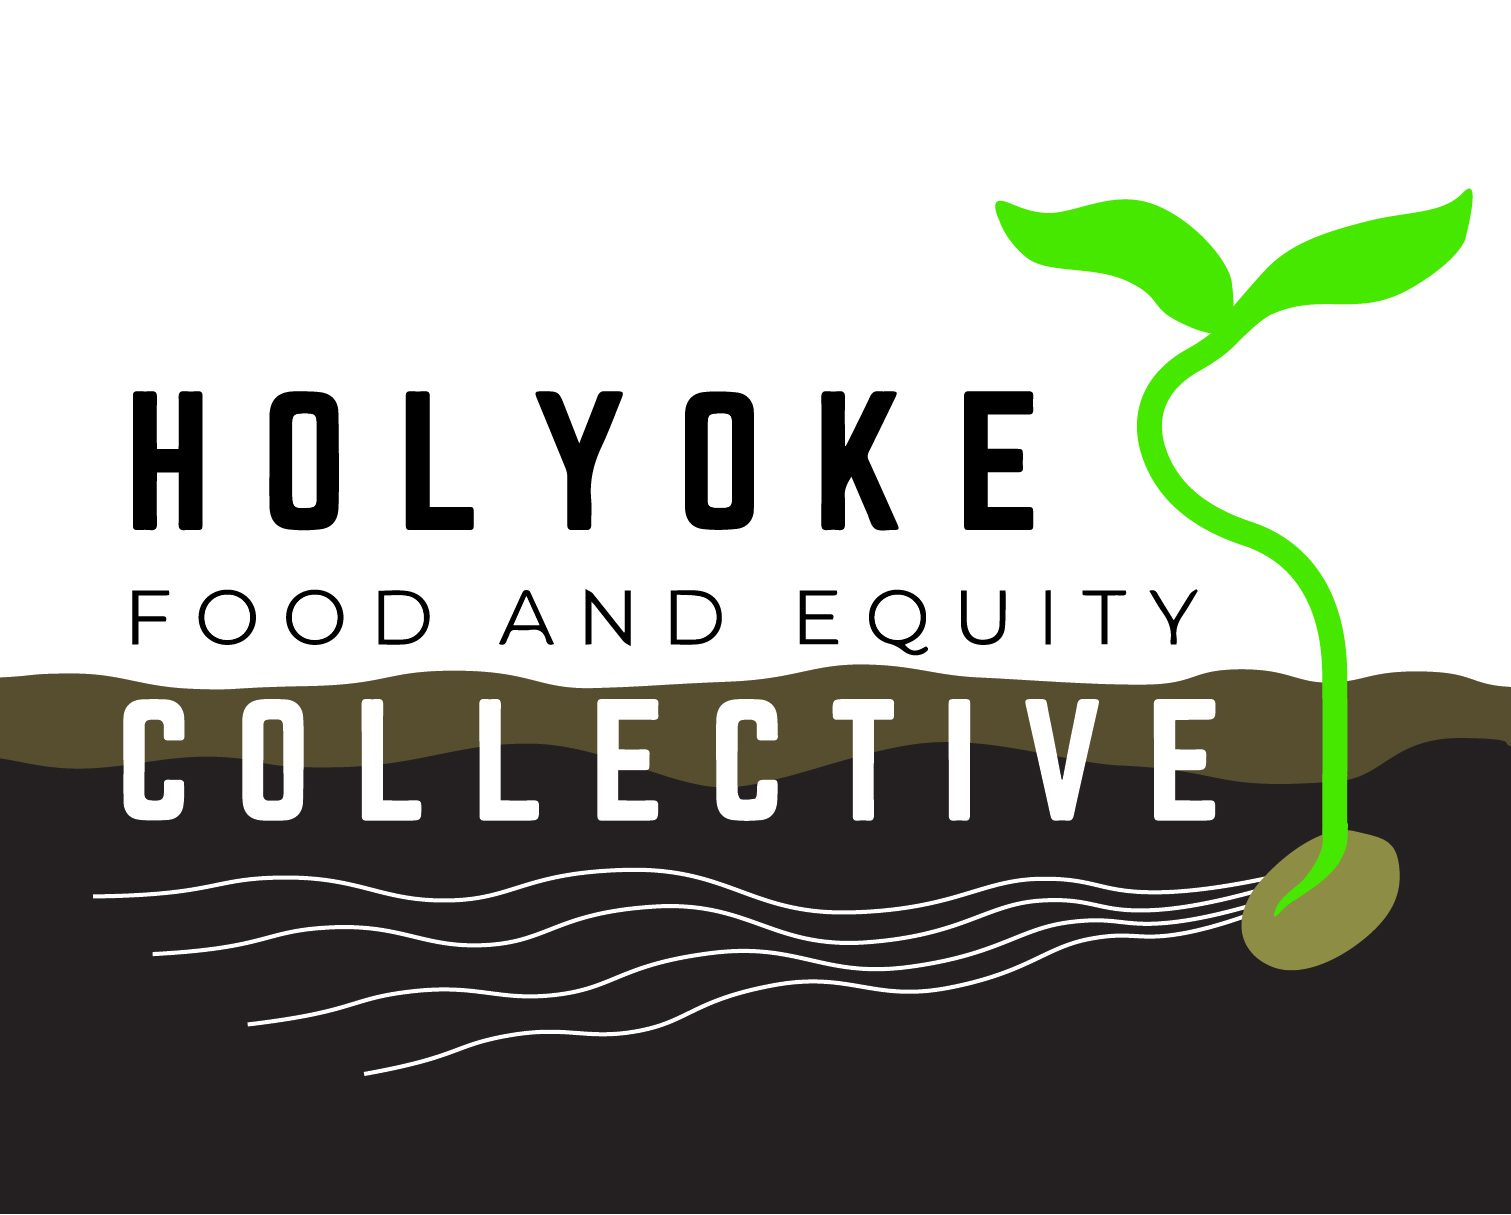 Holyoke Food and Equity Collective